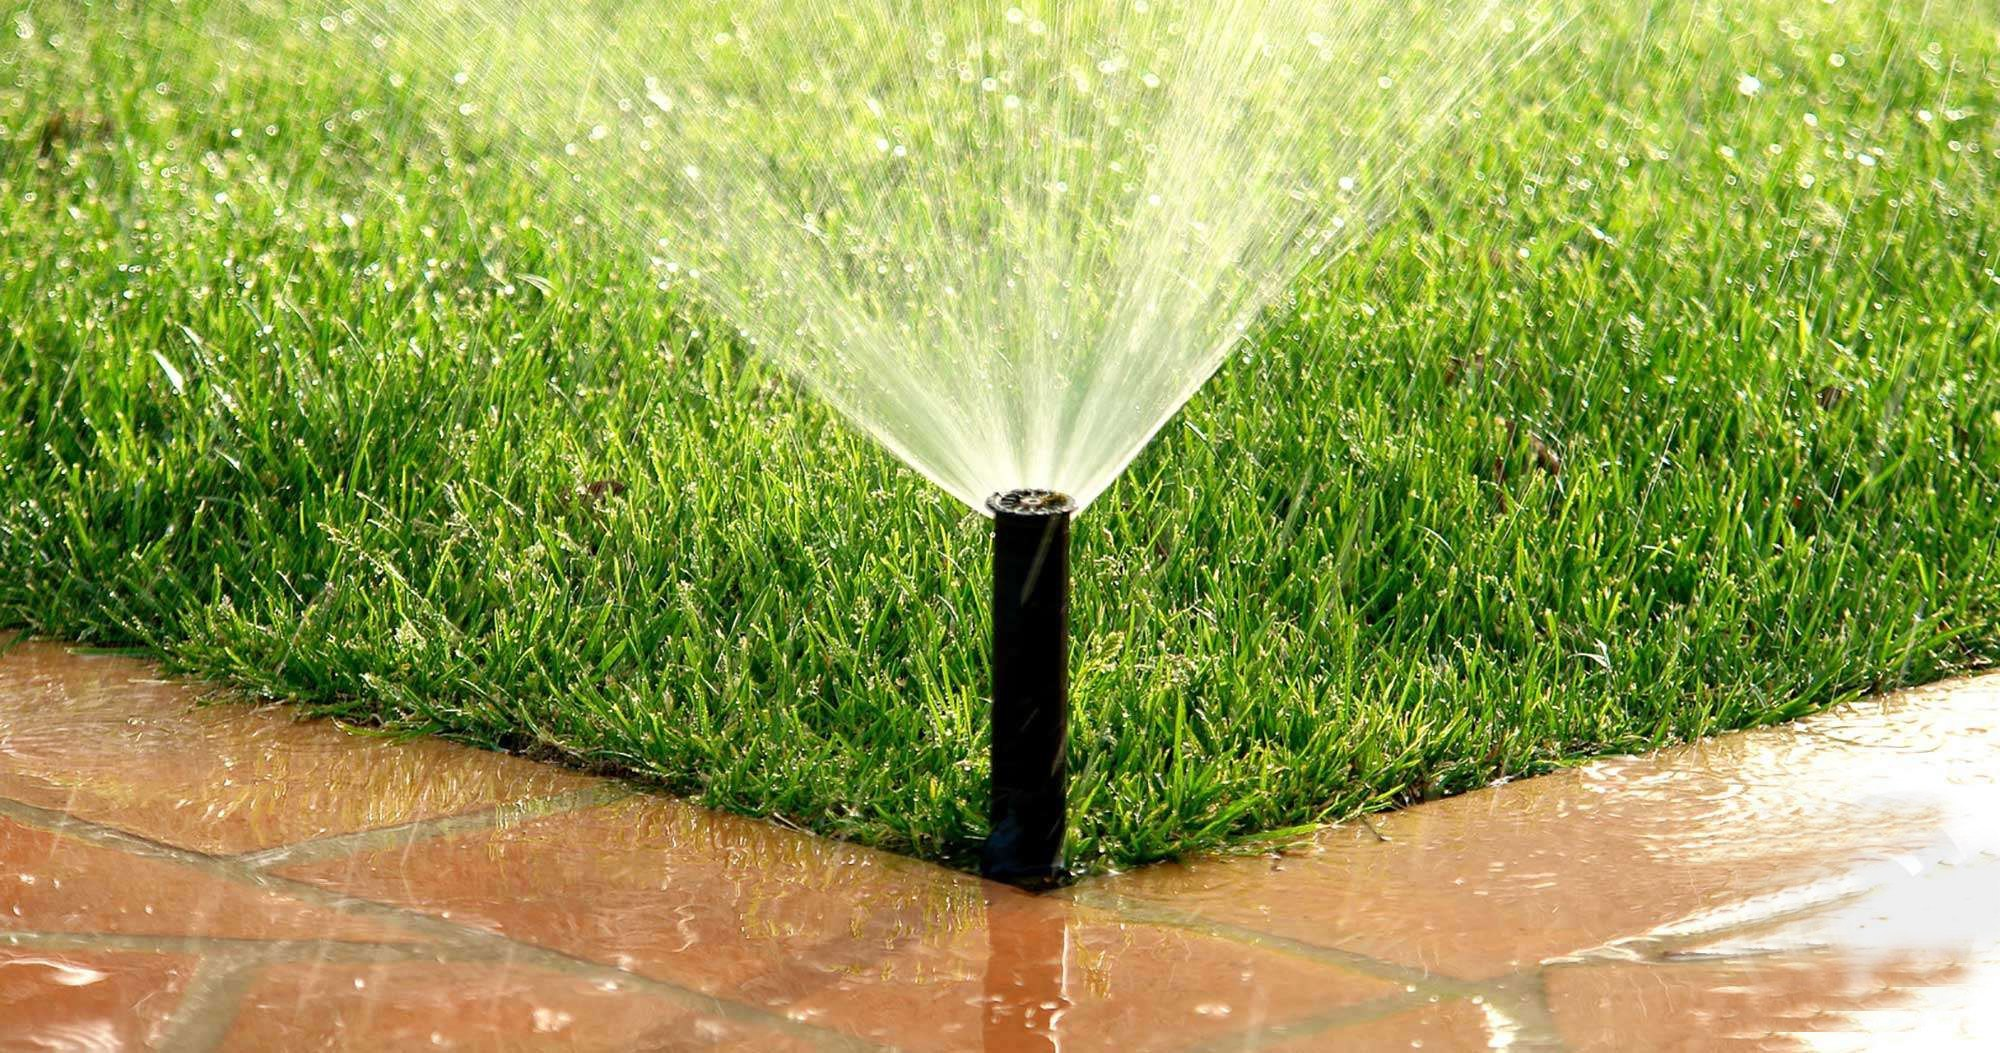 What effect will you get when you use an irrigation system on your lawn?